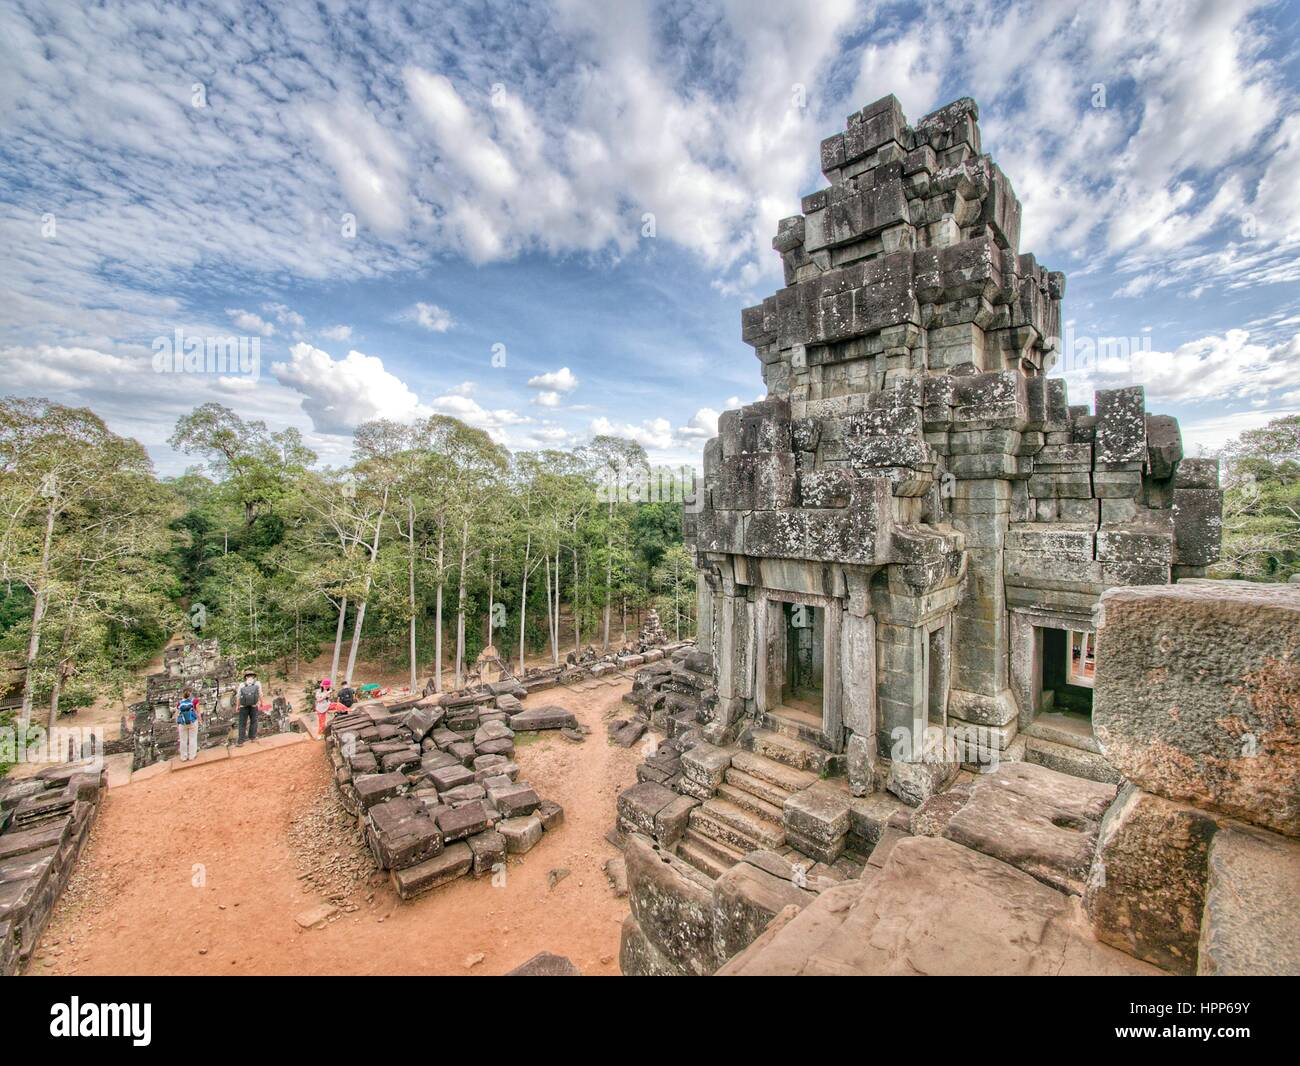 Temple at angkor wat site - Stock Image